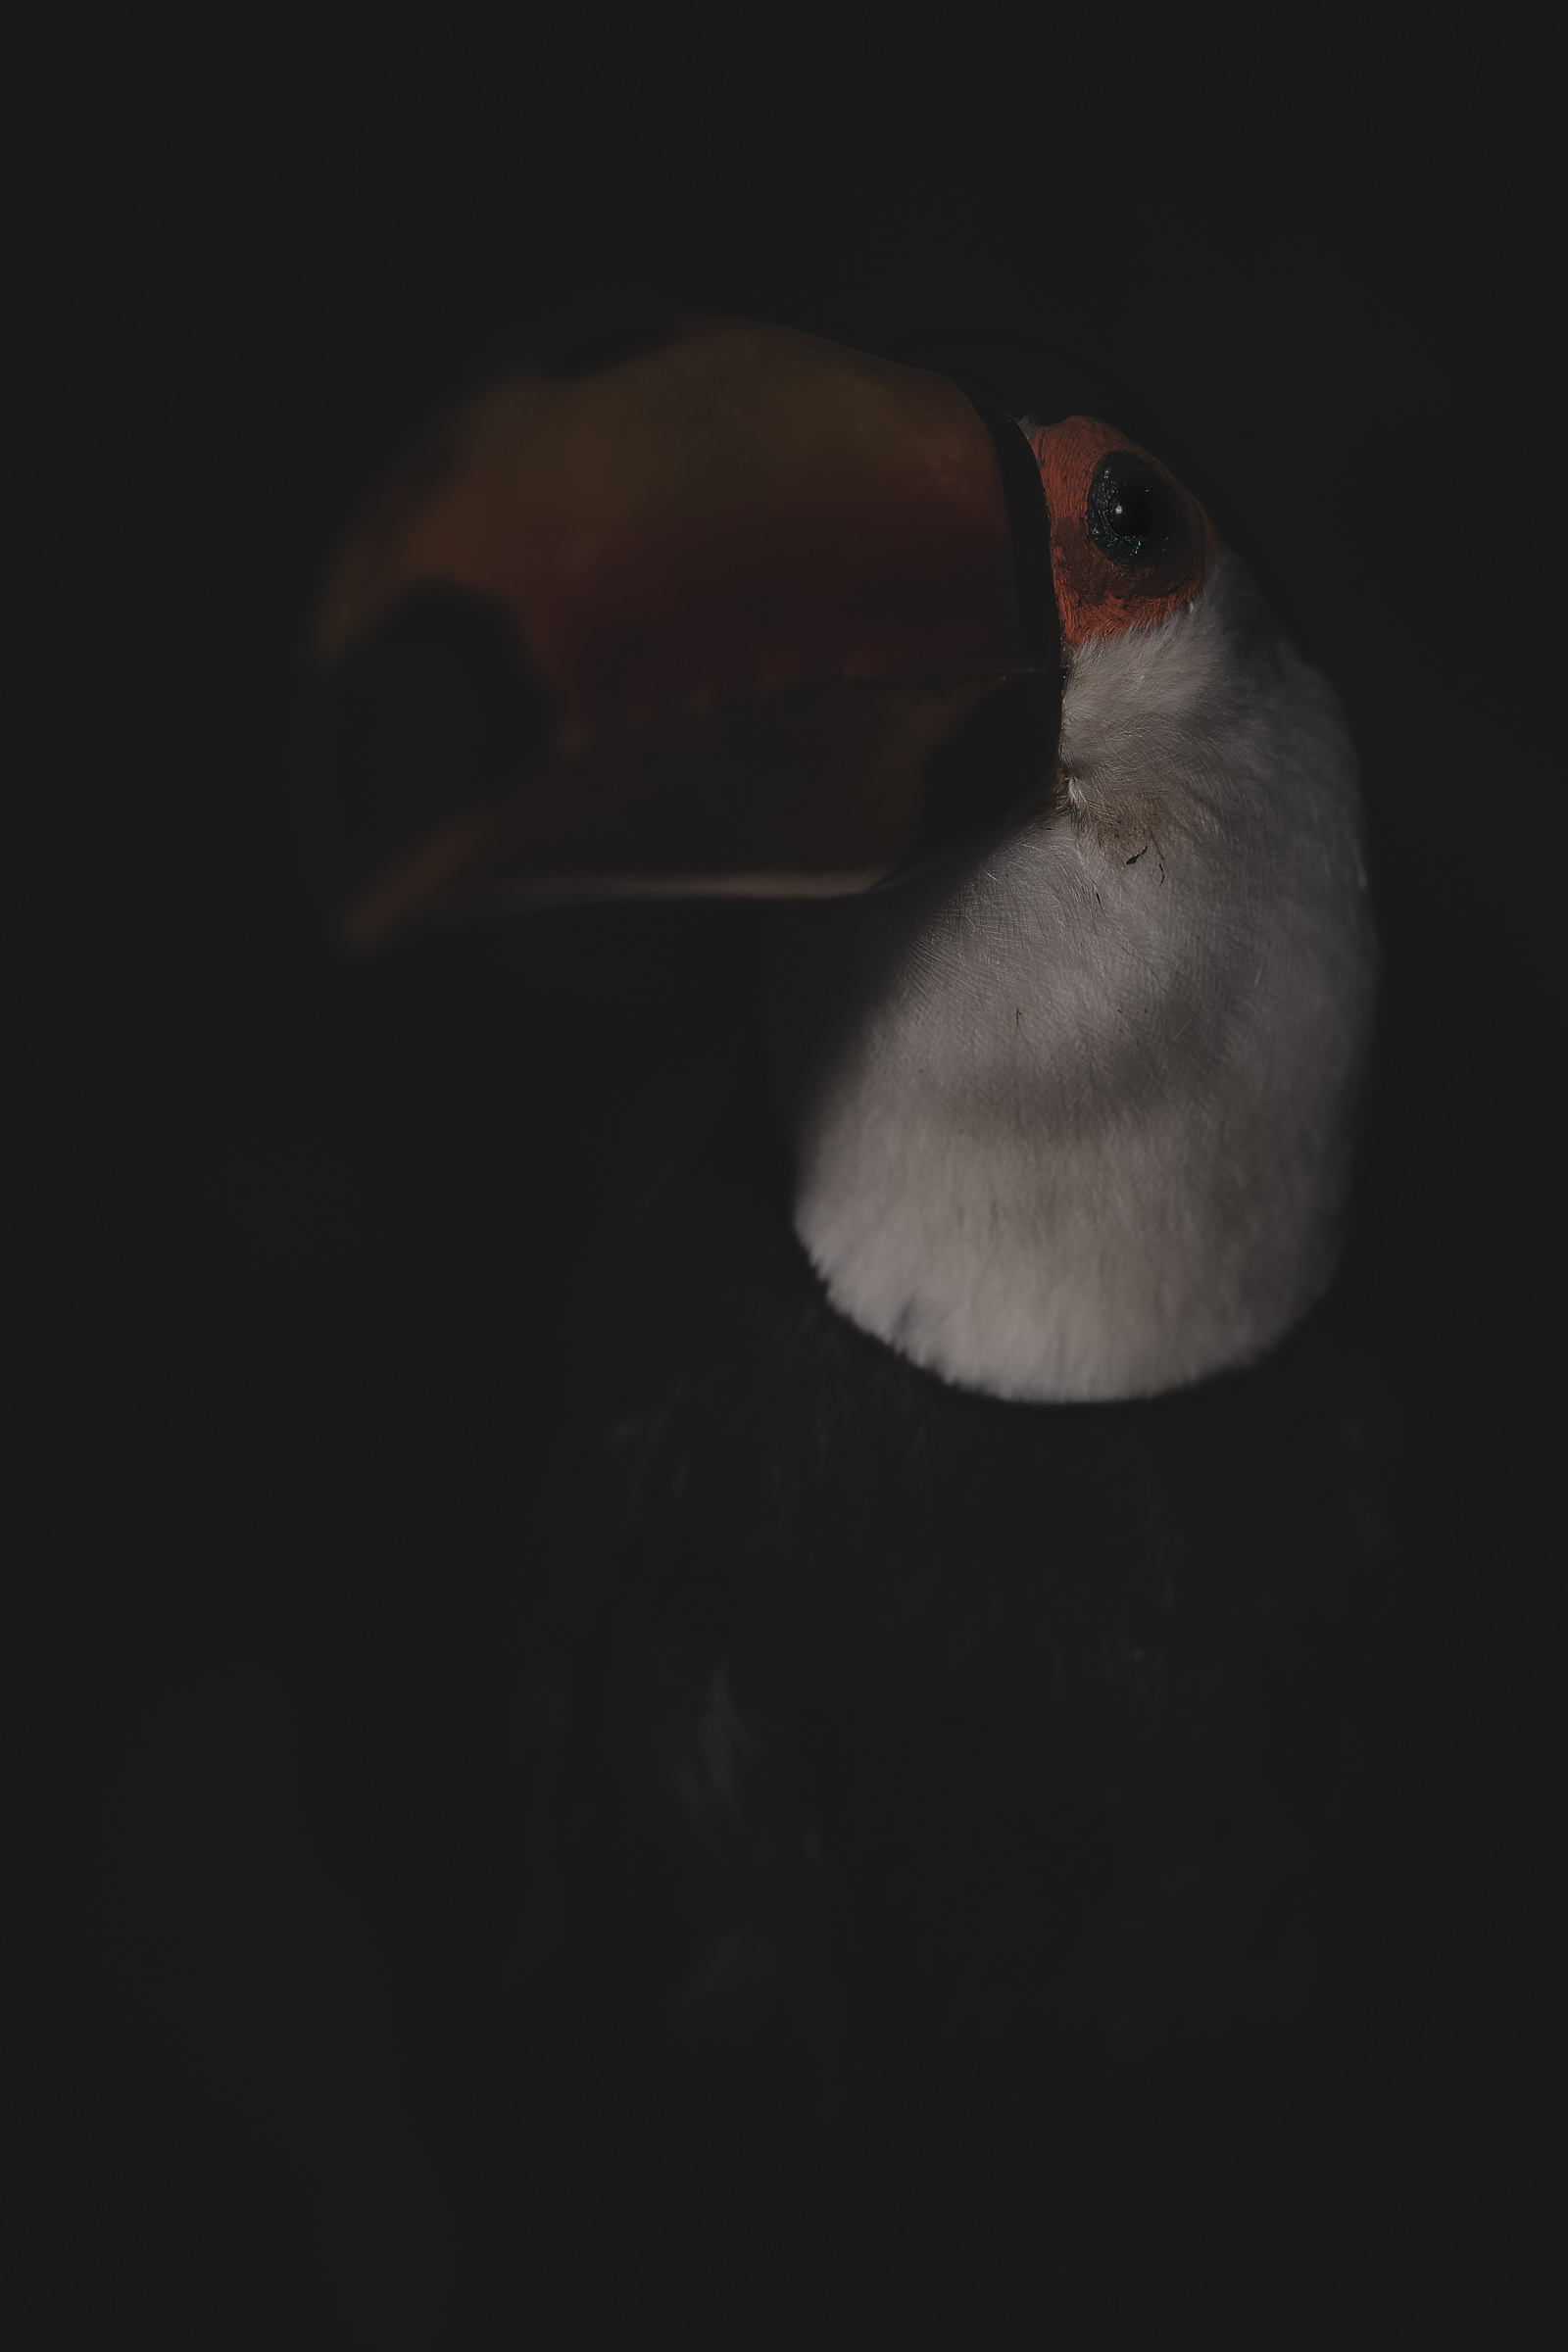 Anima, No. 9 - The Toucan